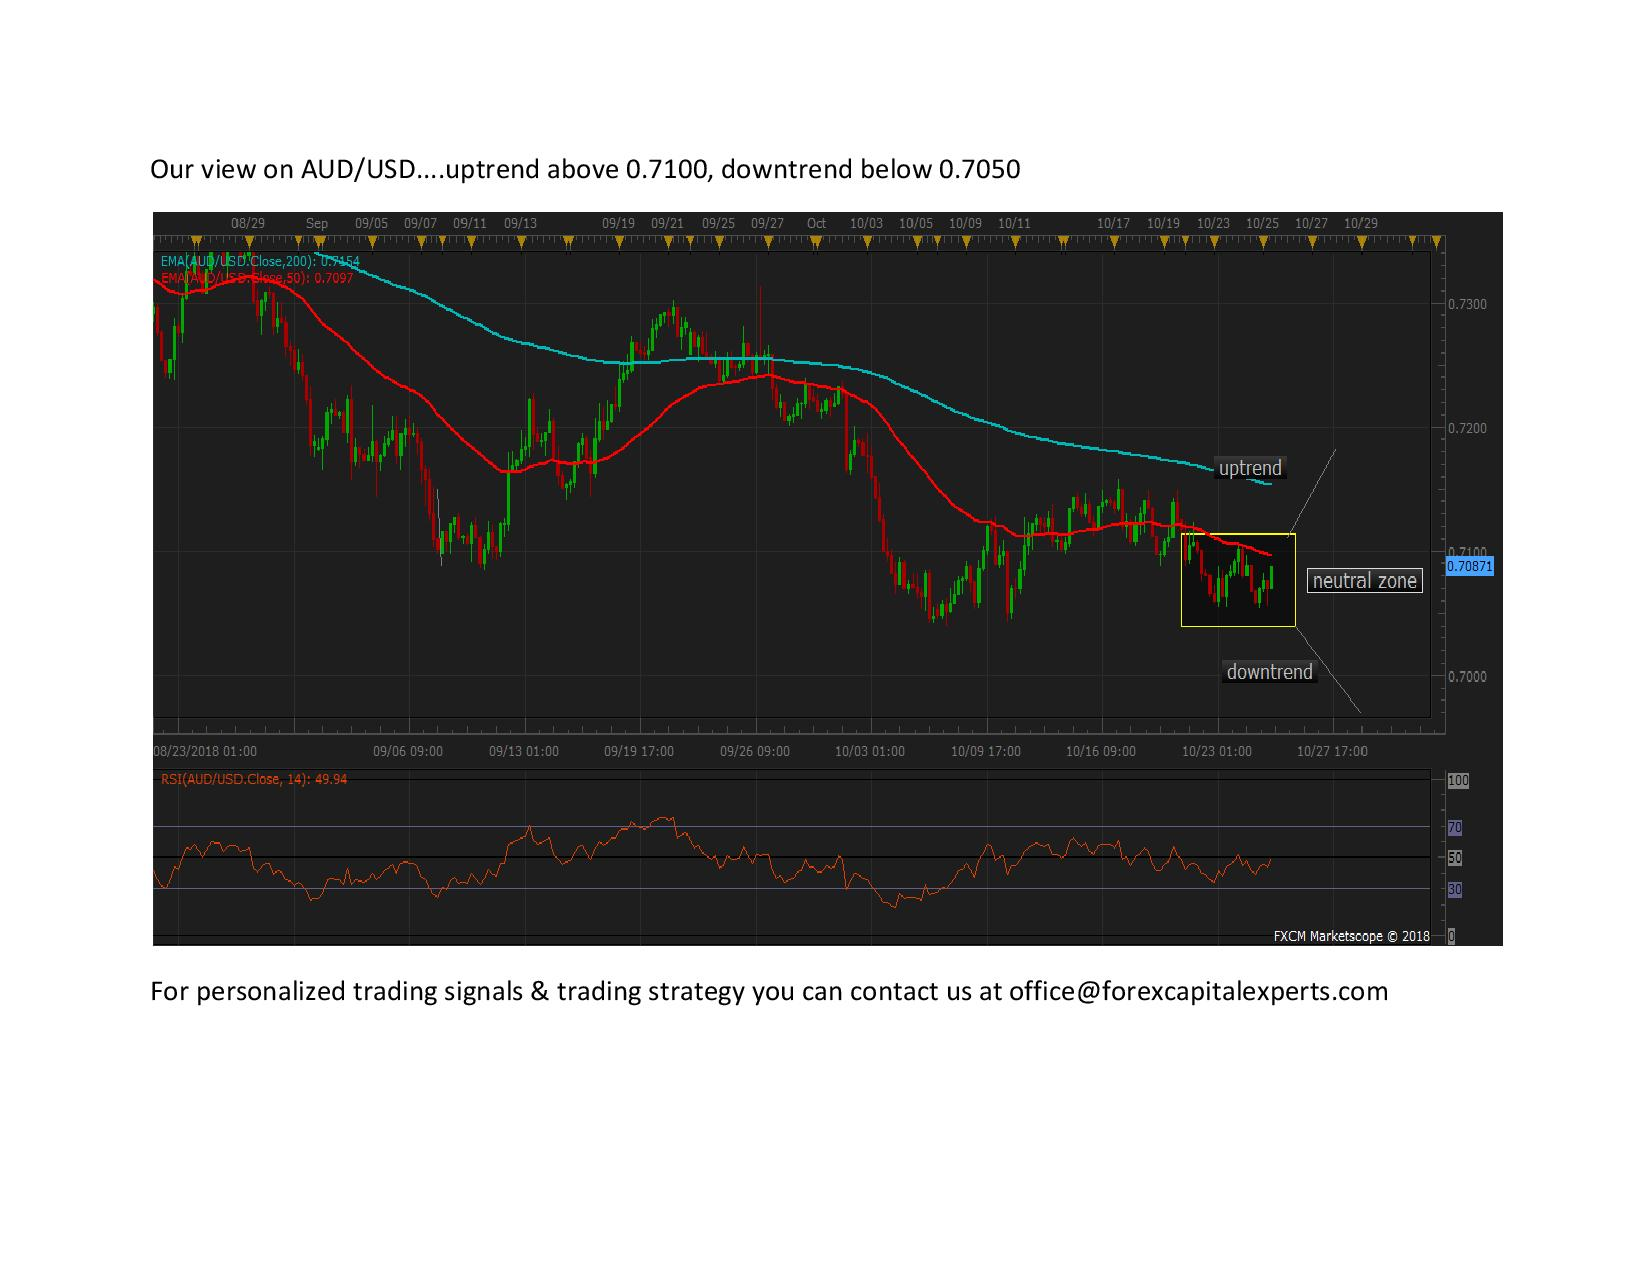 Our view on AUDUSD page 00